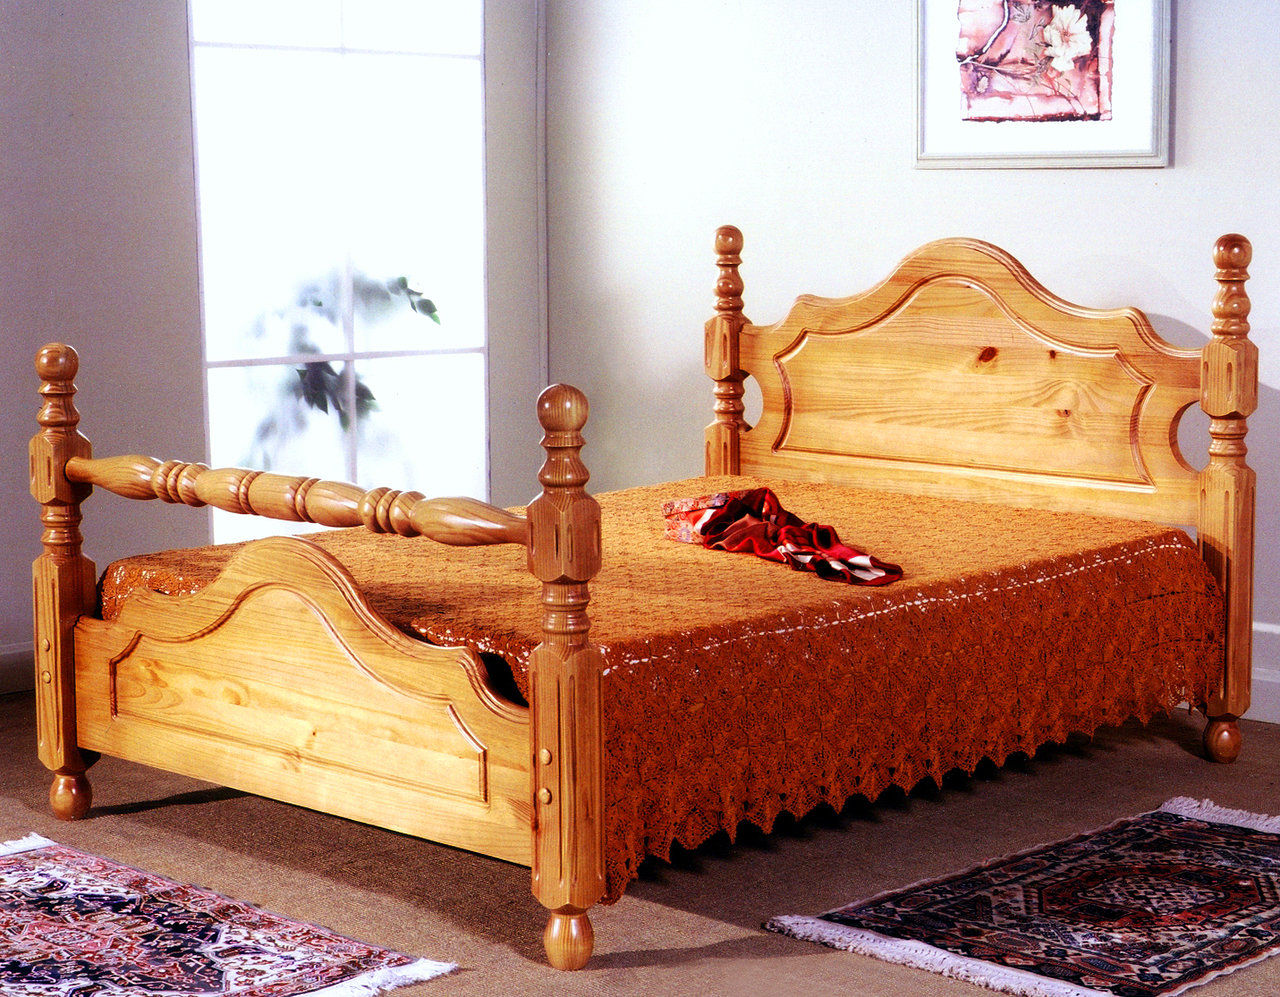 COTSWORLD DOUBLE BED